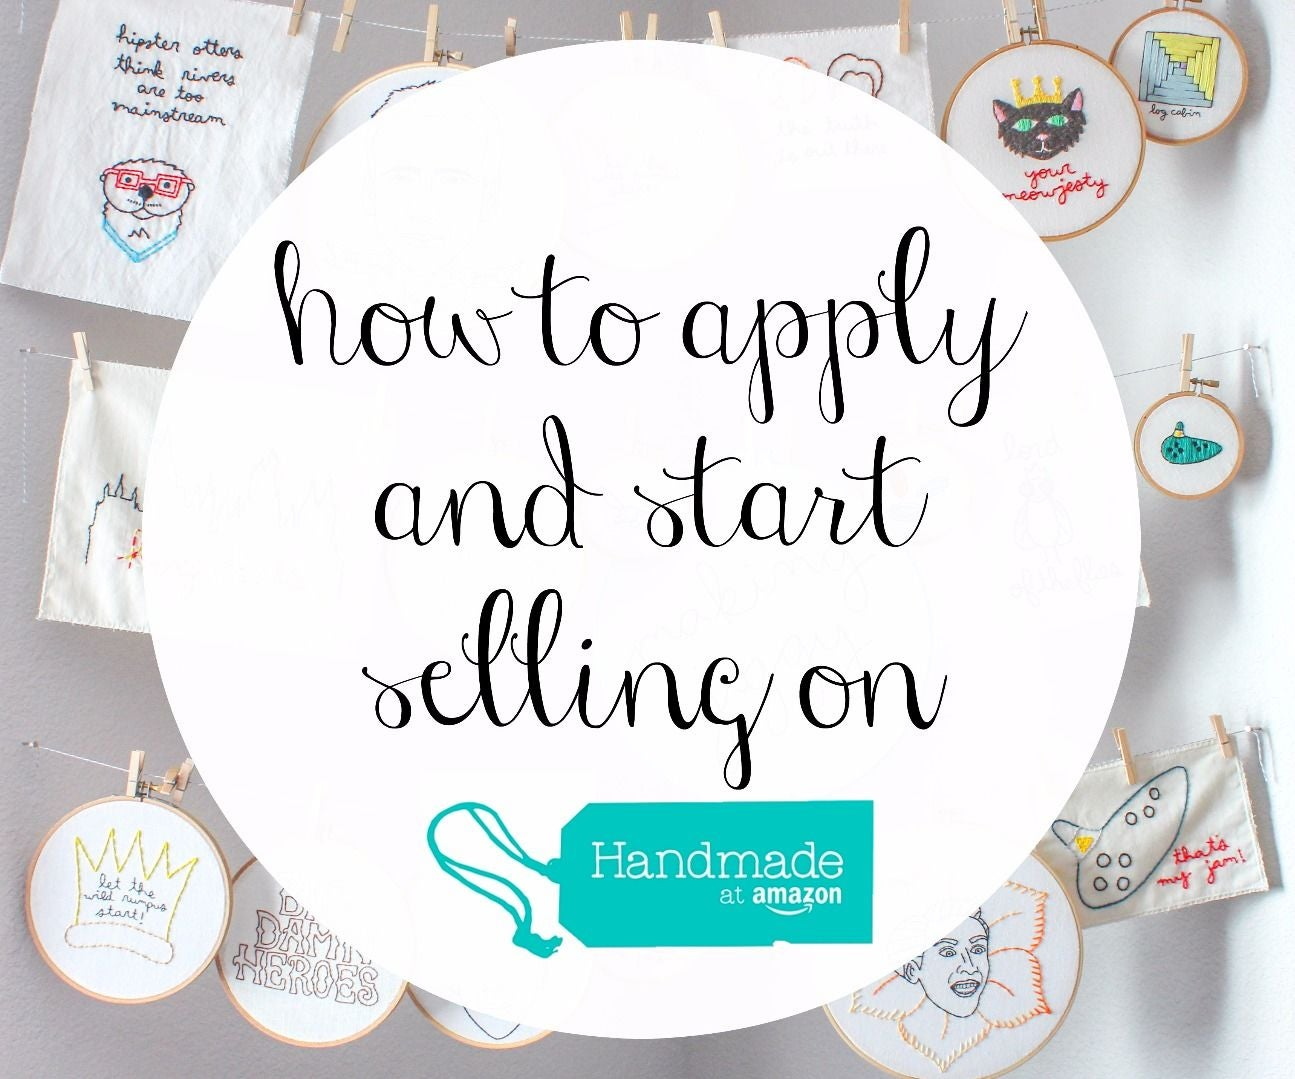 ca5c50642 How to Apply and Sell With Handmade at Amazon: 10 Steps (with Pictures)